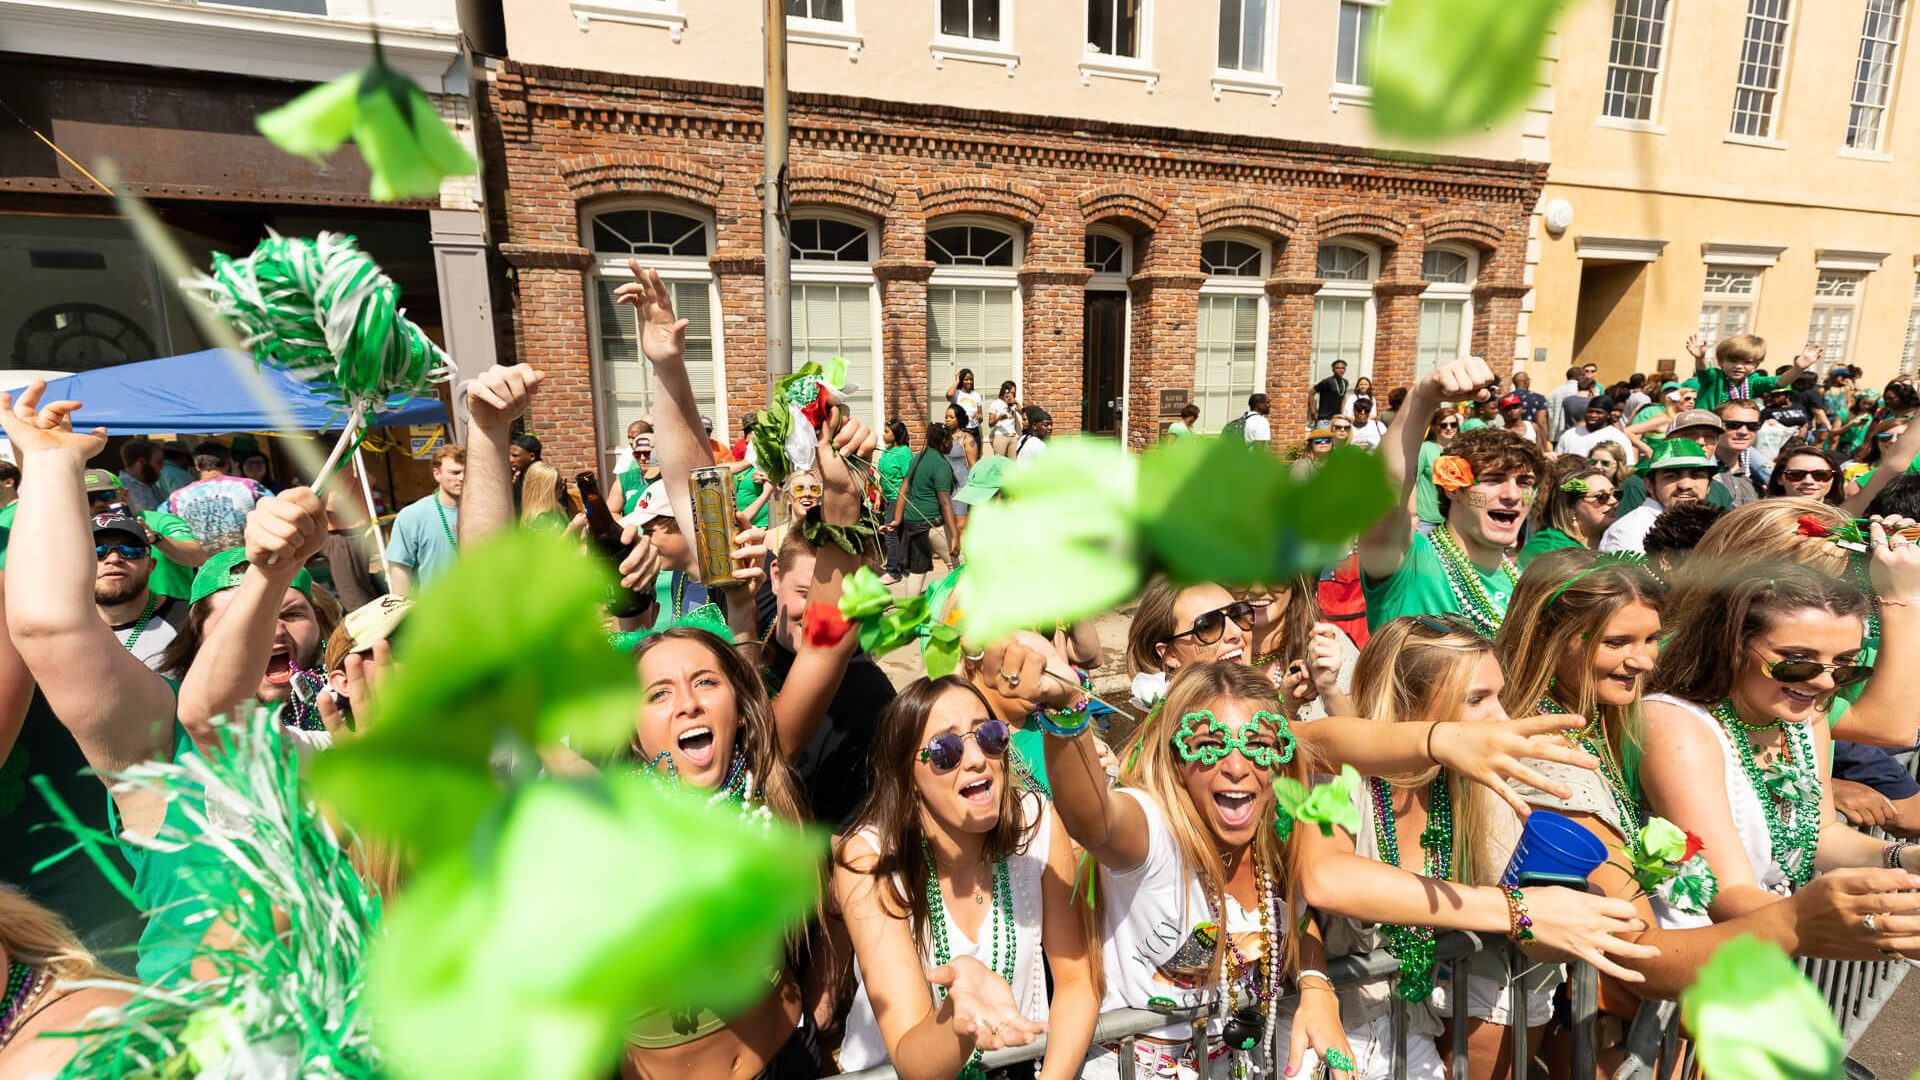 St. Paddys Day Parade